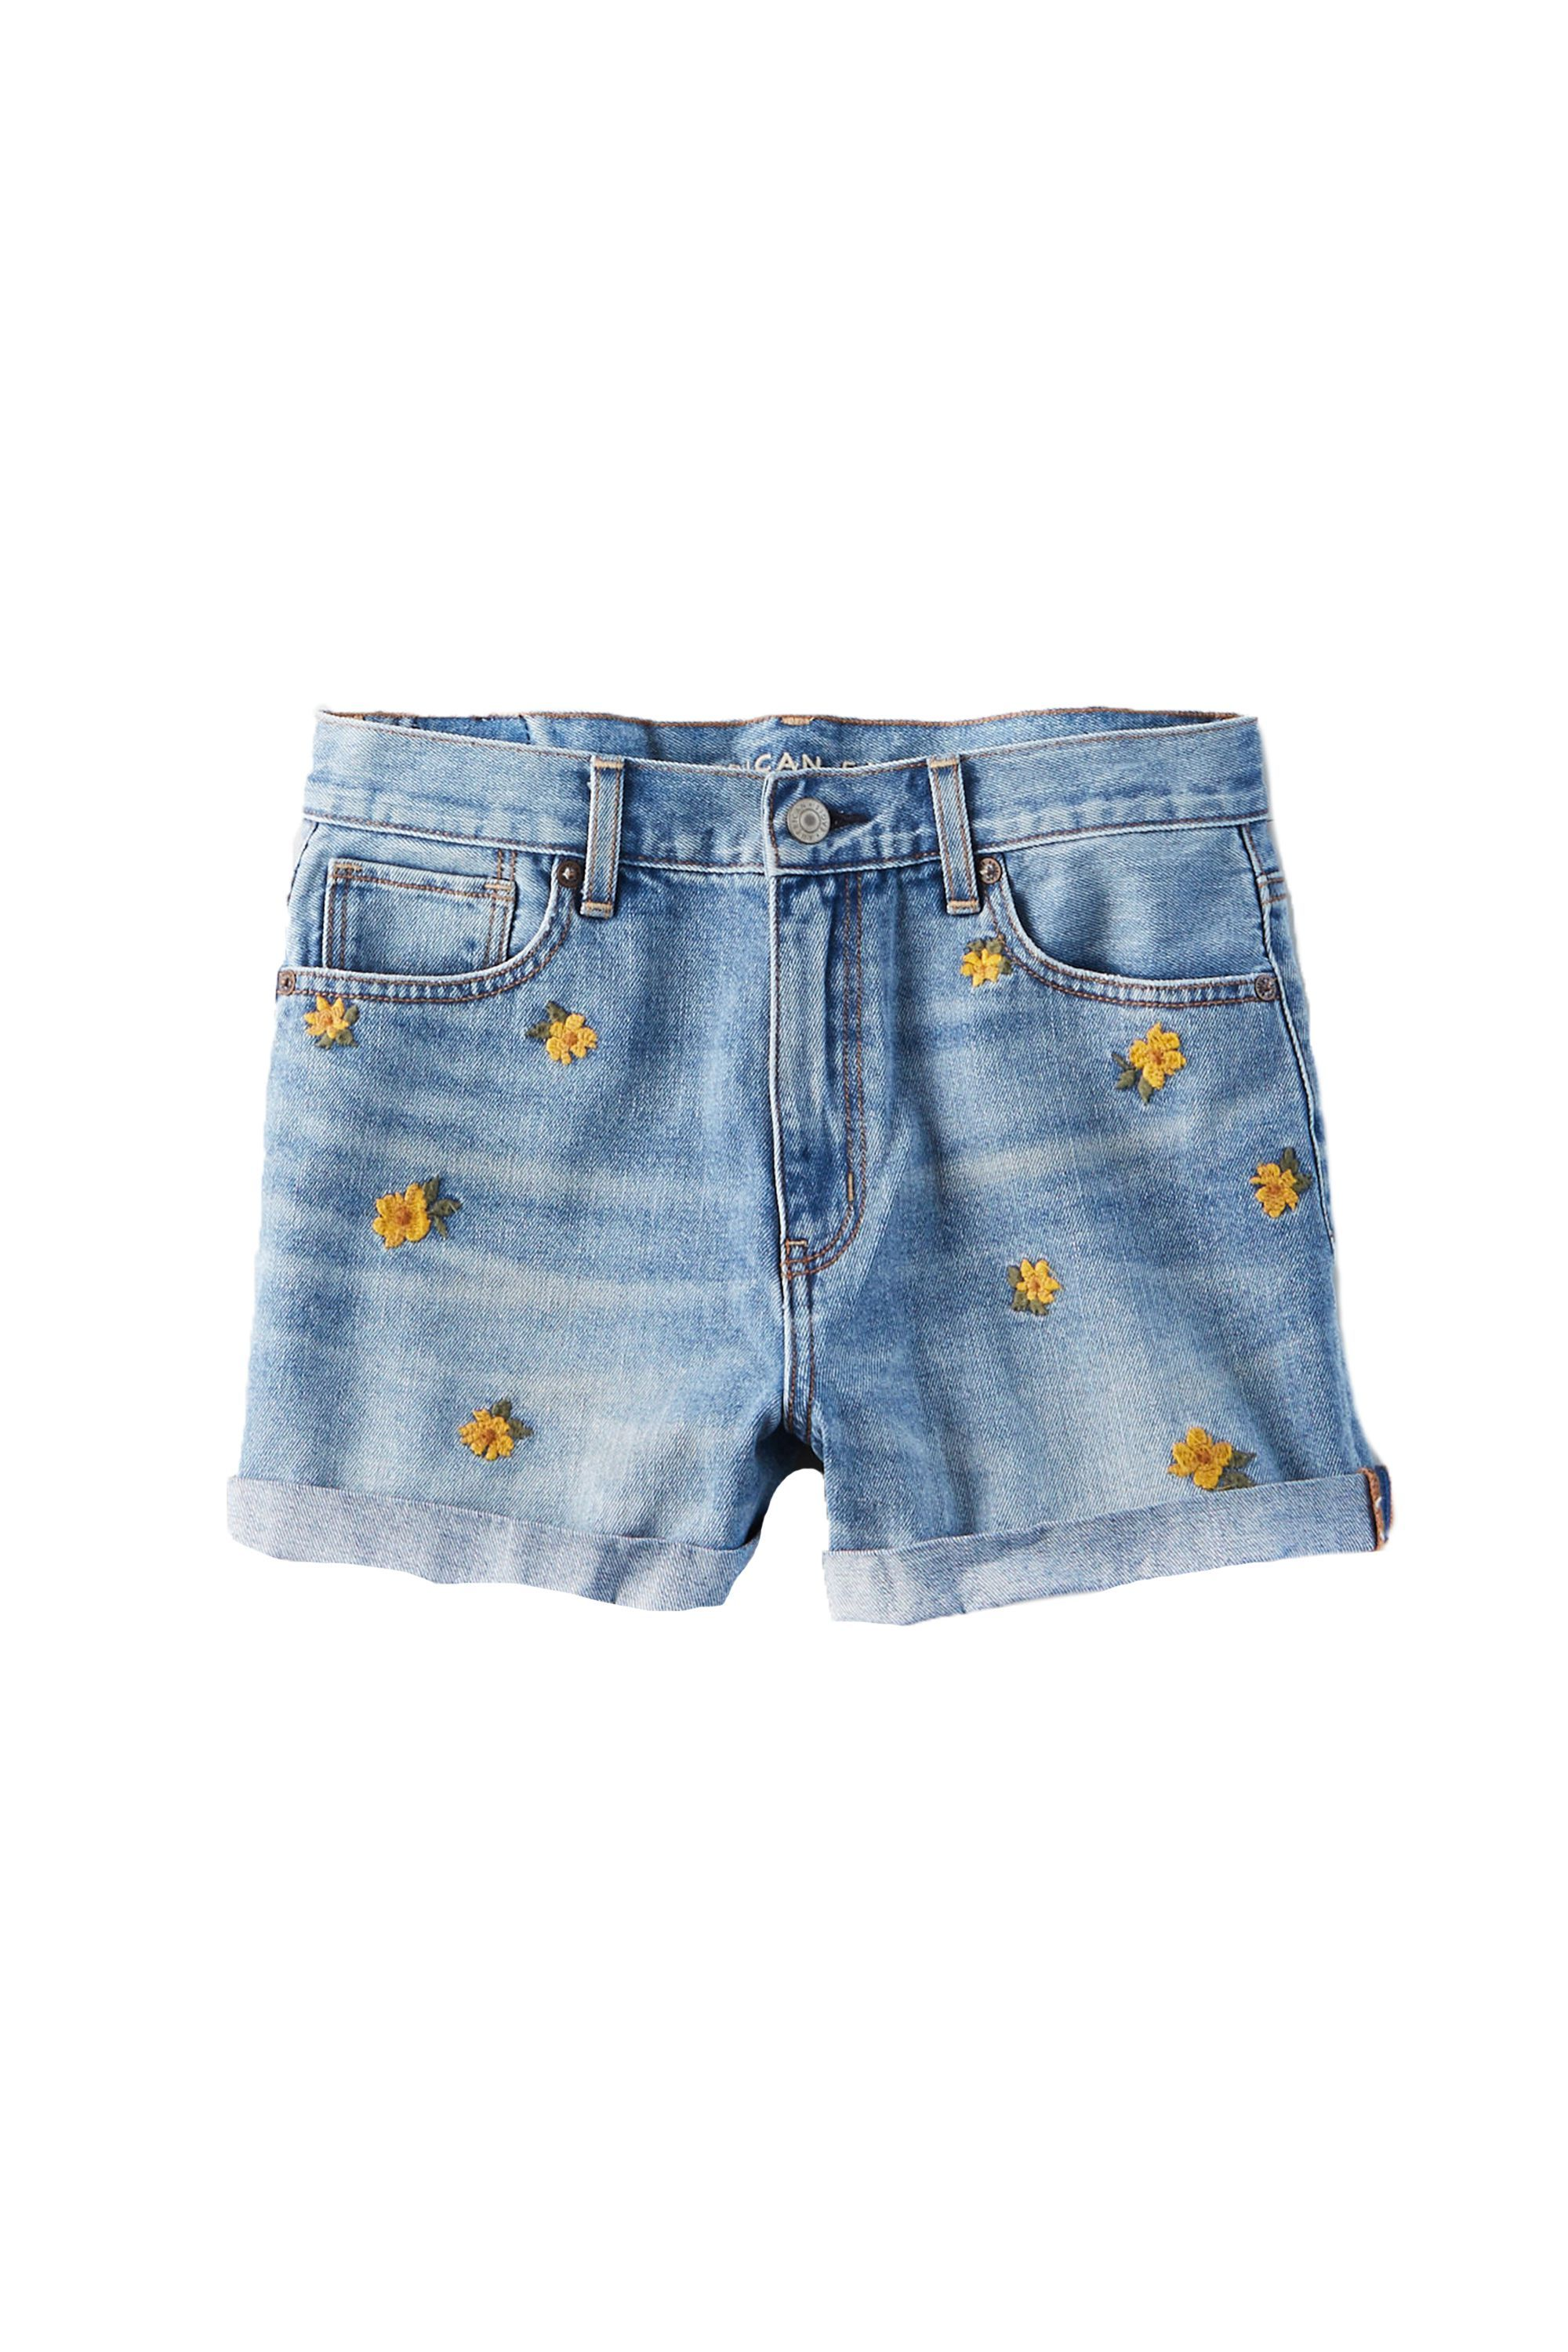 f9e7dd9770 Cute Mom Shorts for 2019 - 11 Pairs of Uncool Mom Shorts That Are Actually  Cool